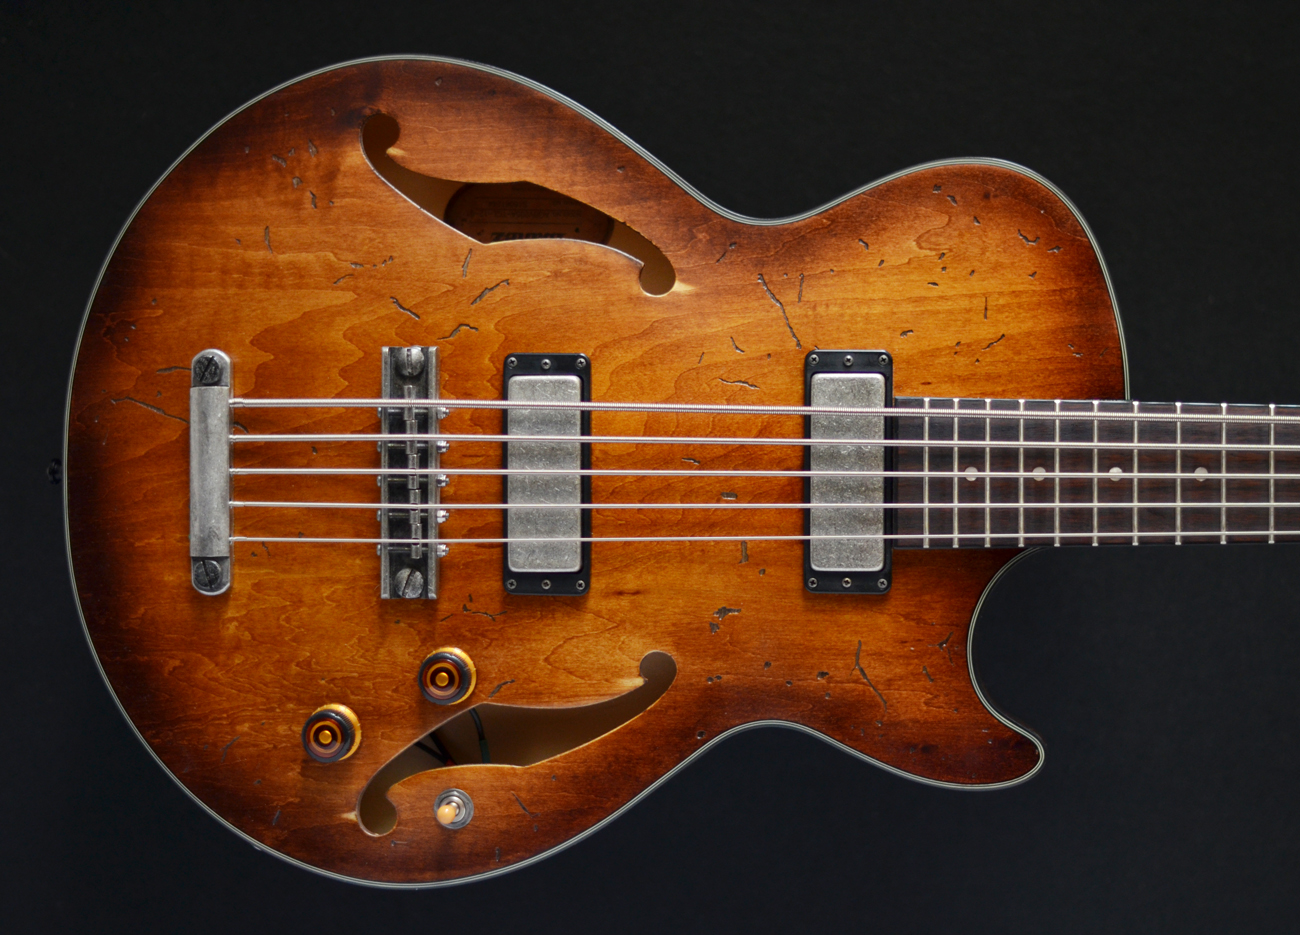 ibanez agbv205a antique brownburst four string bass for sale uk eu second hand used bass. Black Bedroom Furniture Sets. Home Design Ideas